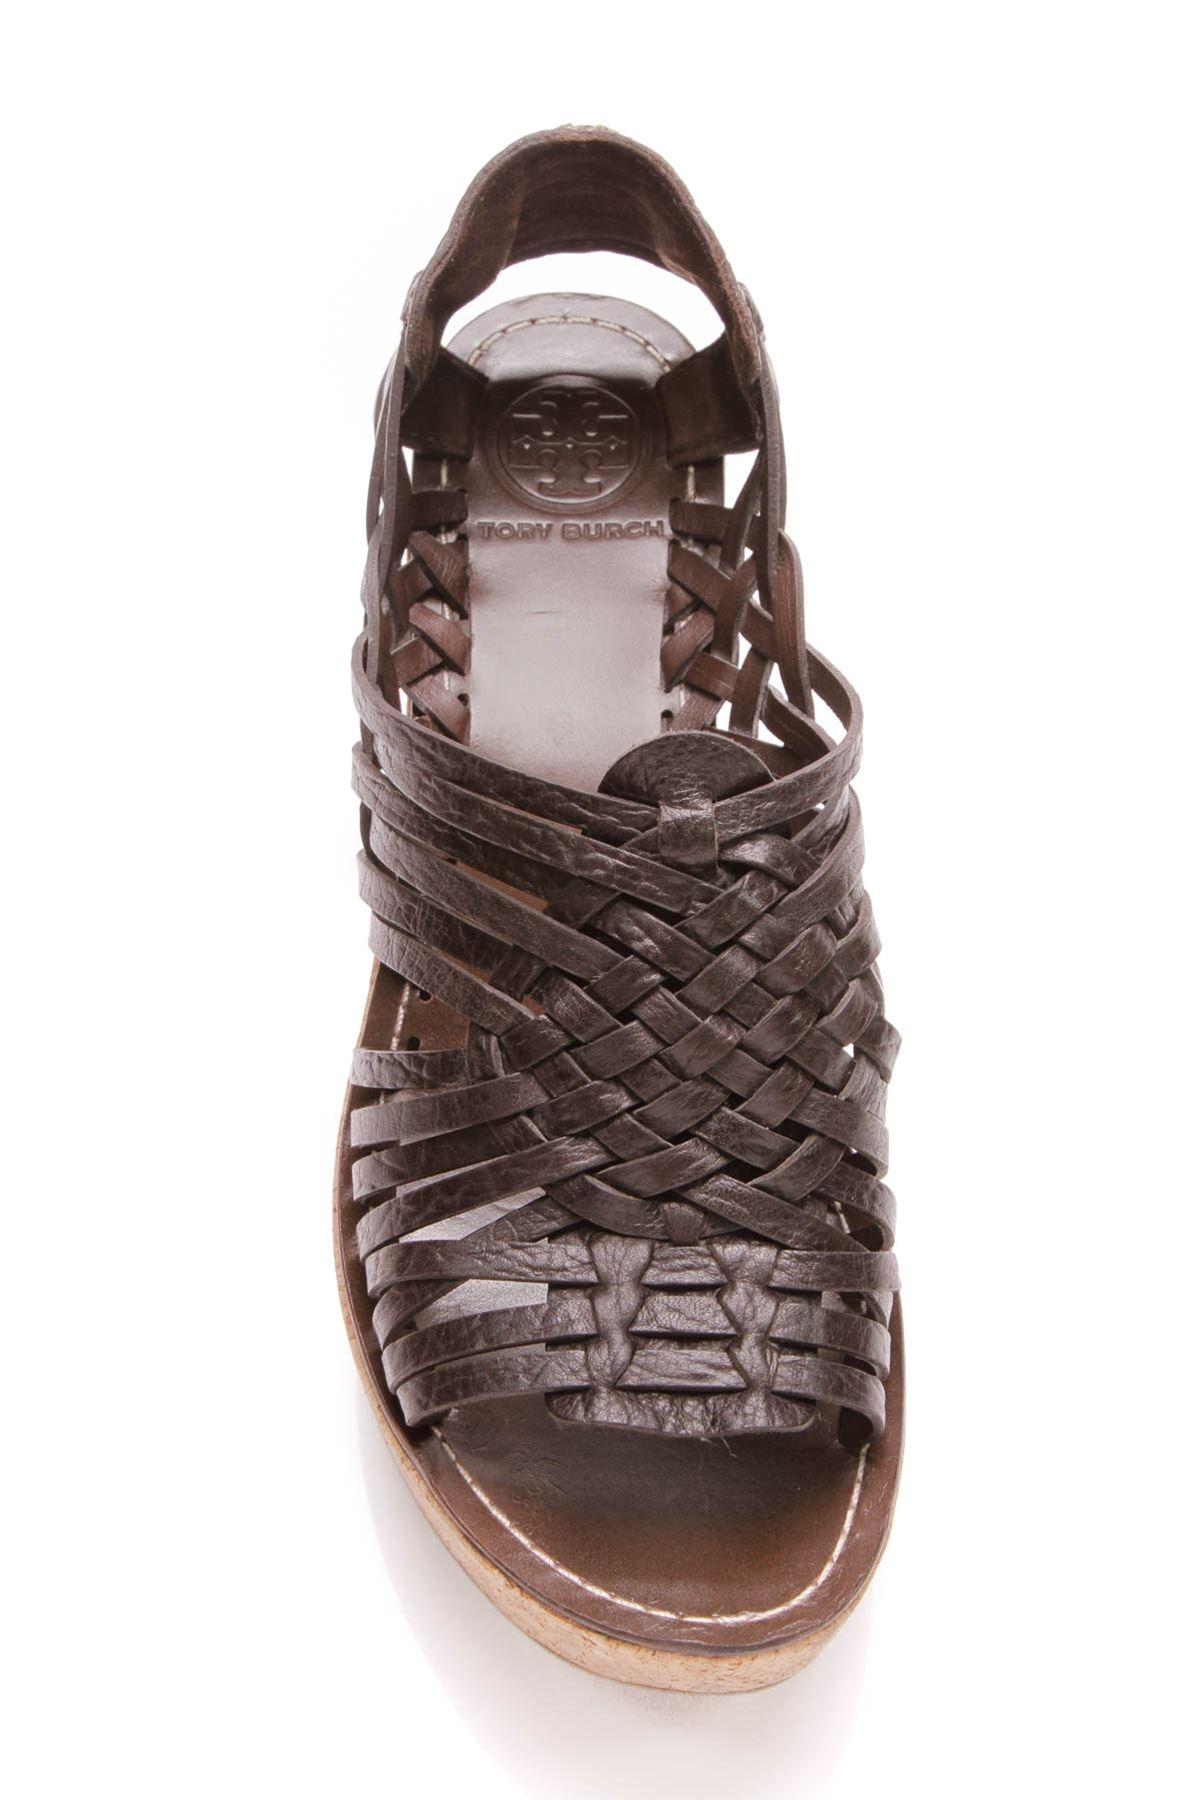 ea49138e133c ... Tory Burch Brown Brown Brown Lottie Cork Sandals - Wedges Size US 9  Regular (M ...